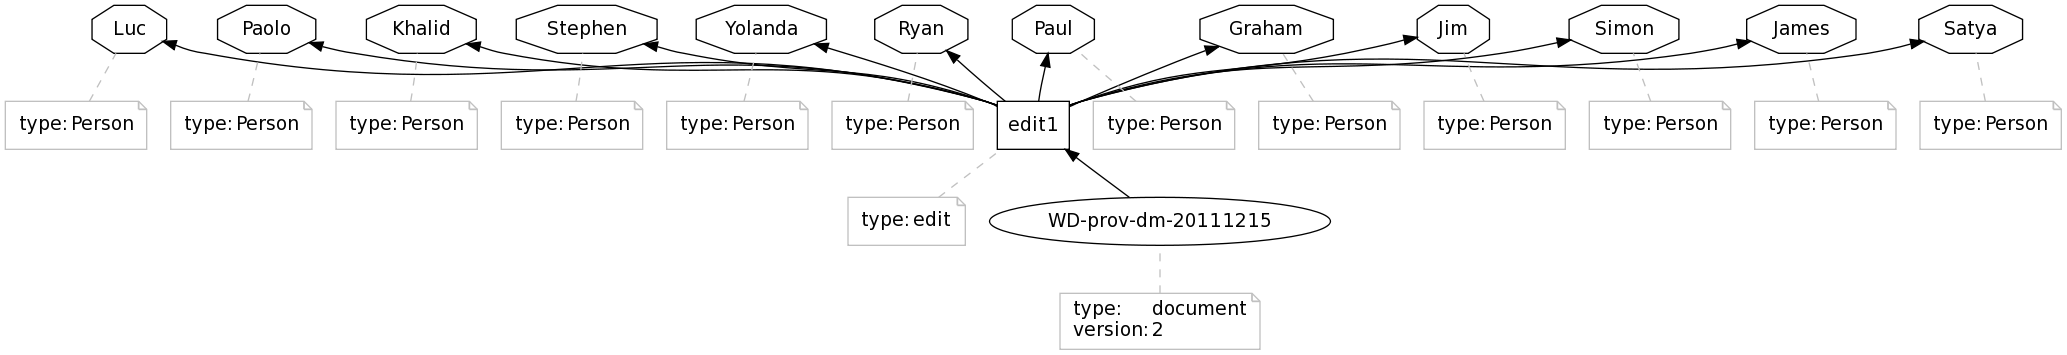 W3c-publication3.png